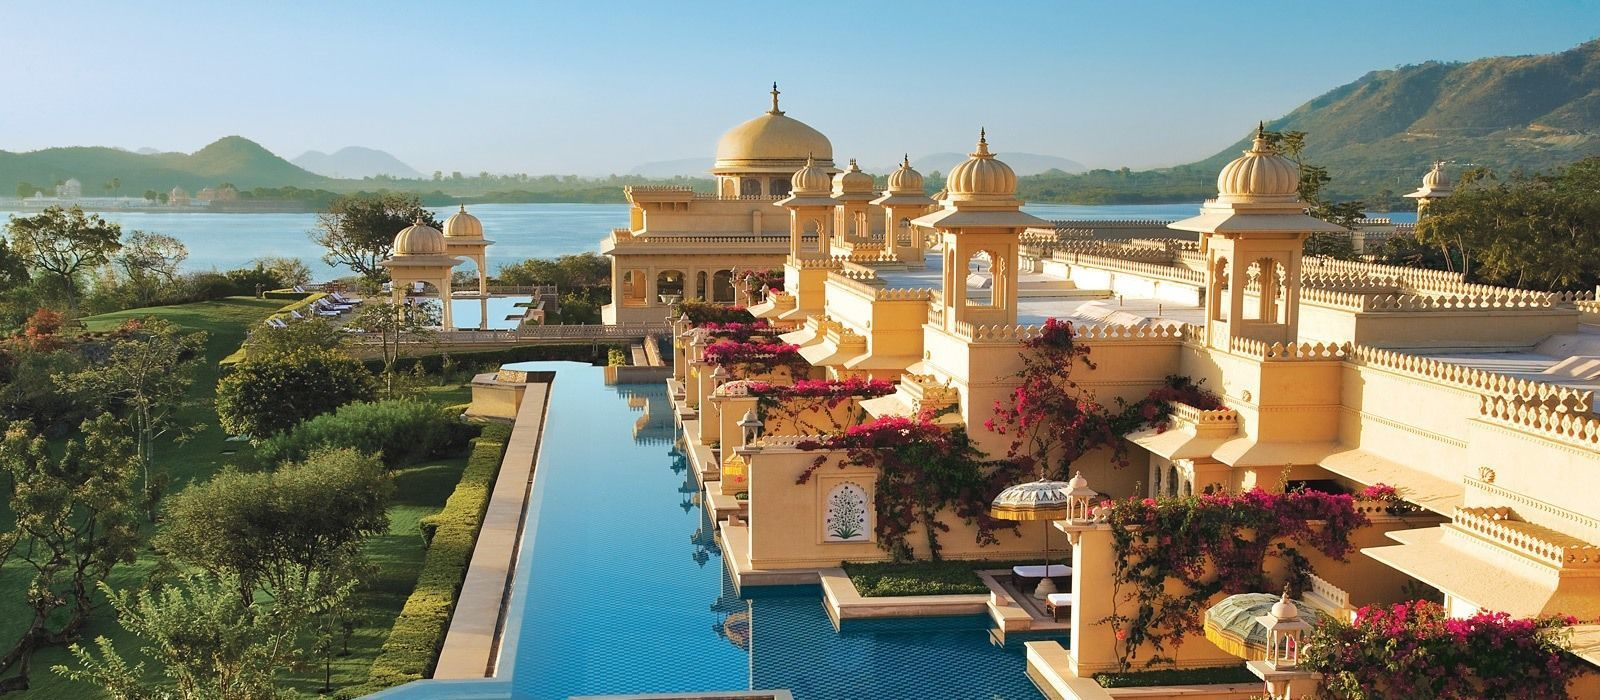 The Oberoi Hotels & Resorts Sommerangebot: Royales Rajasthan Urlaub 3